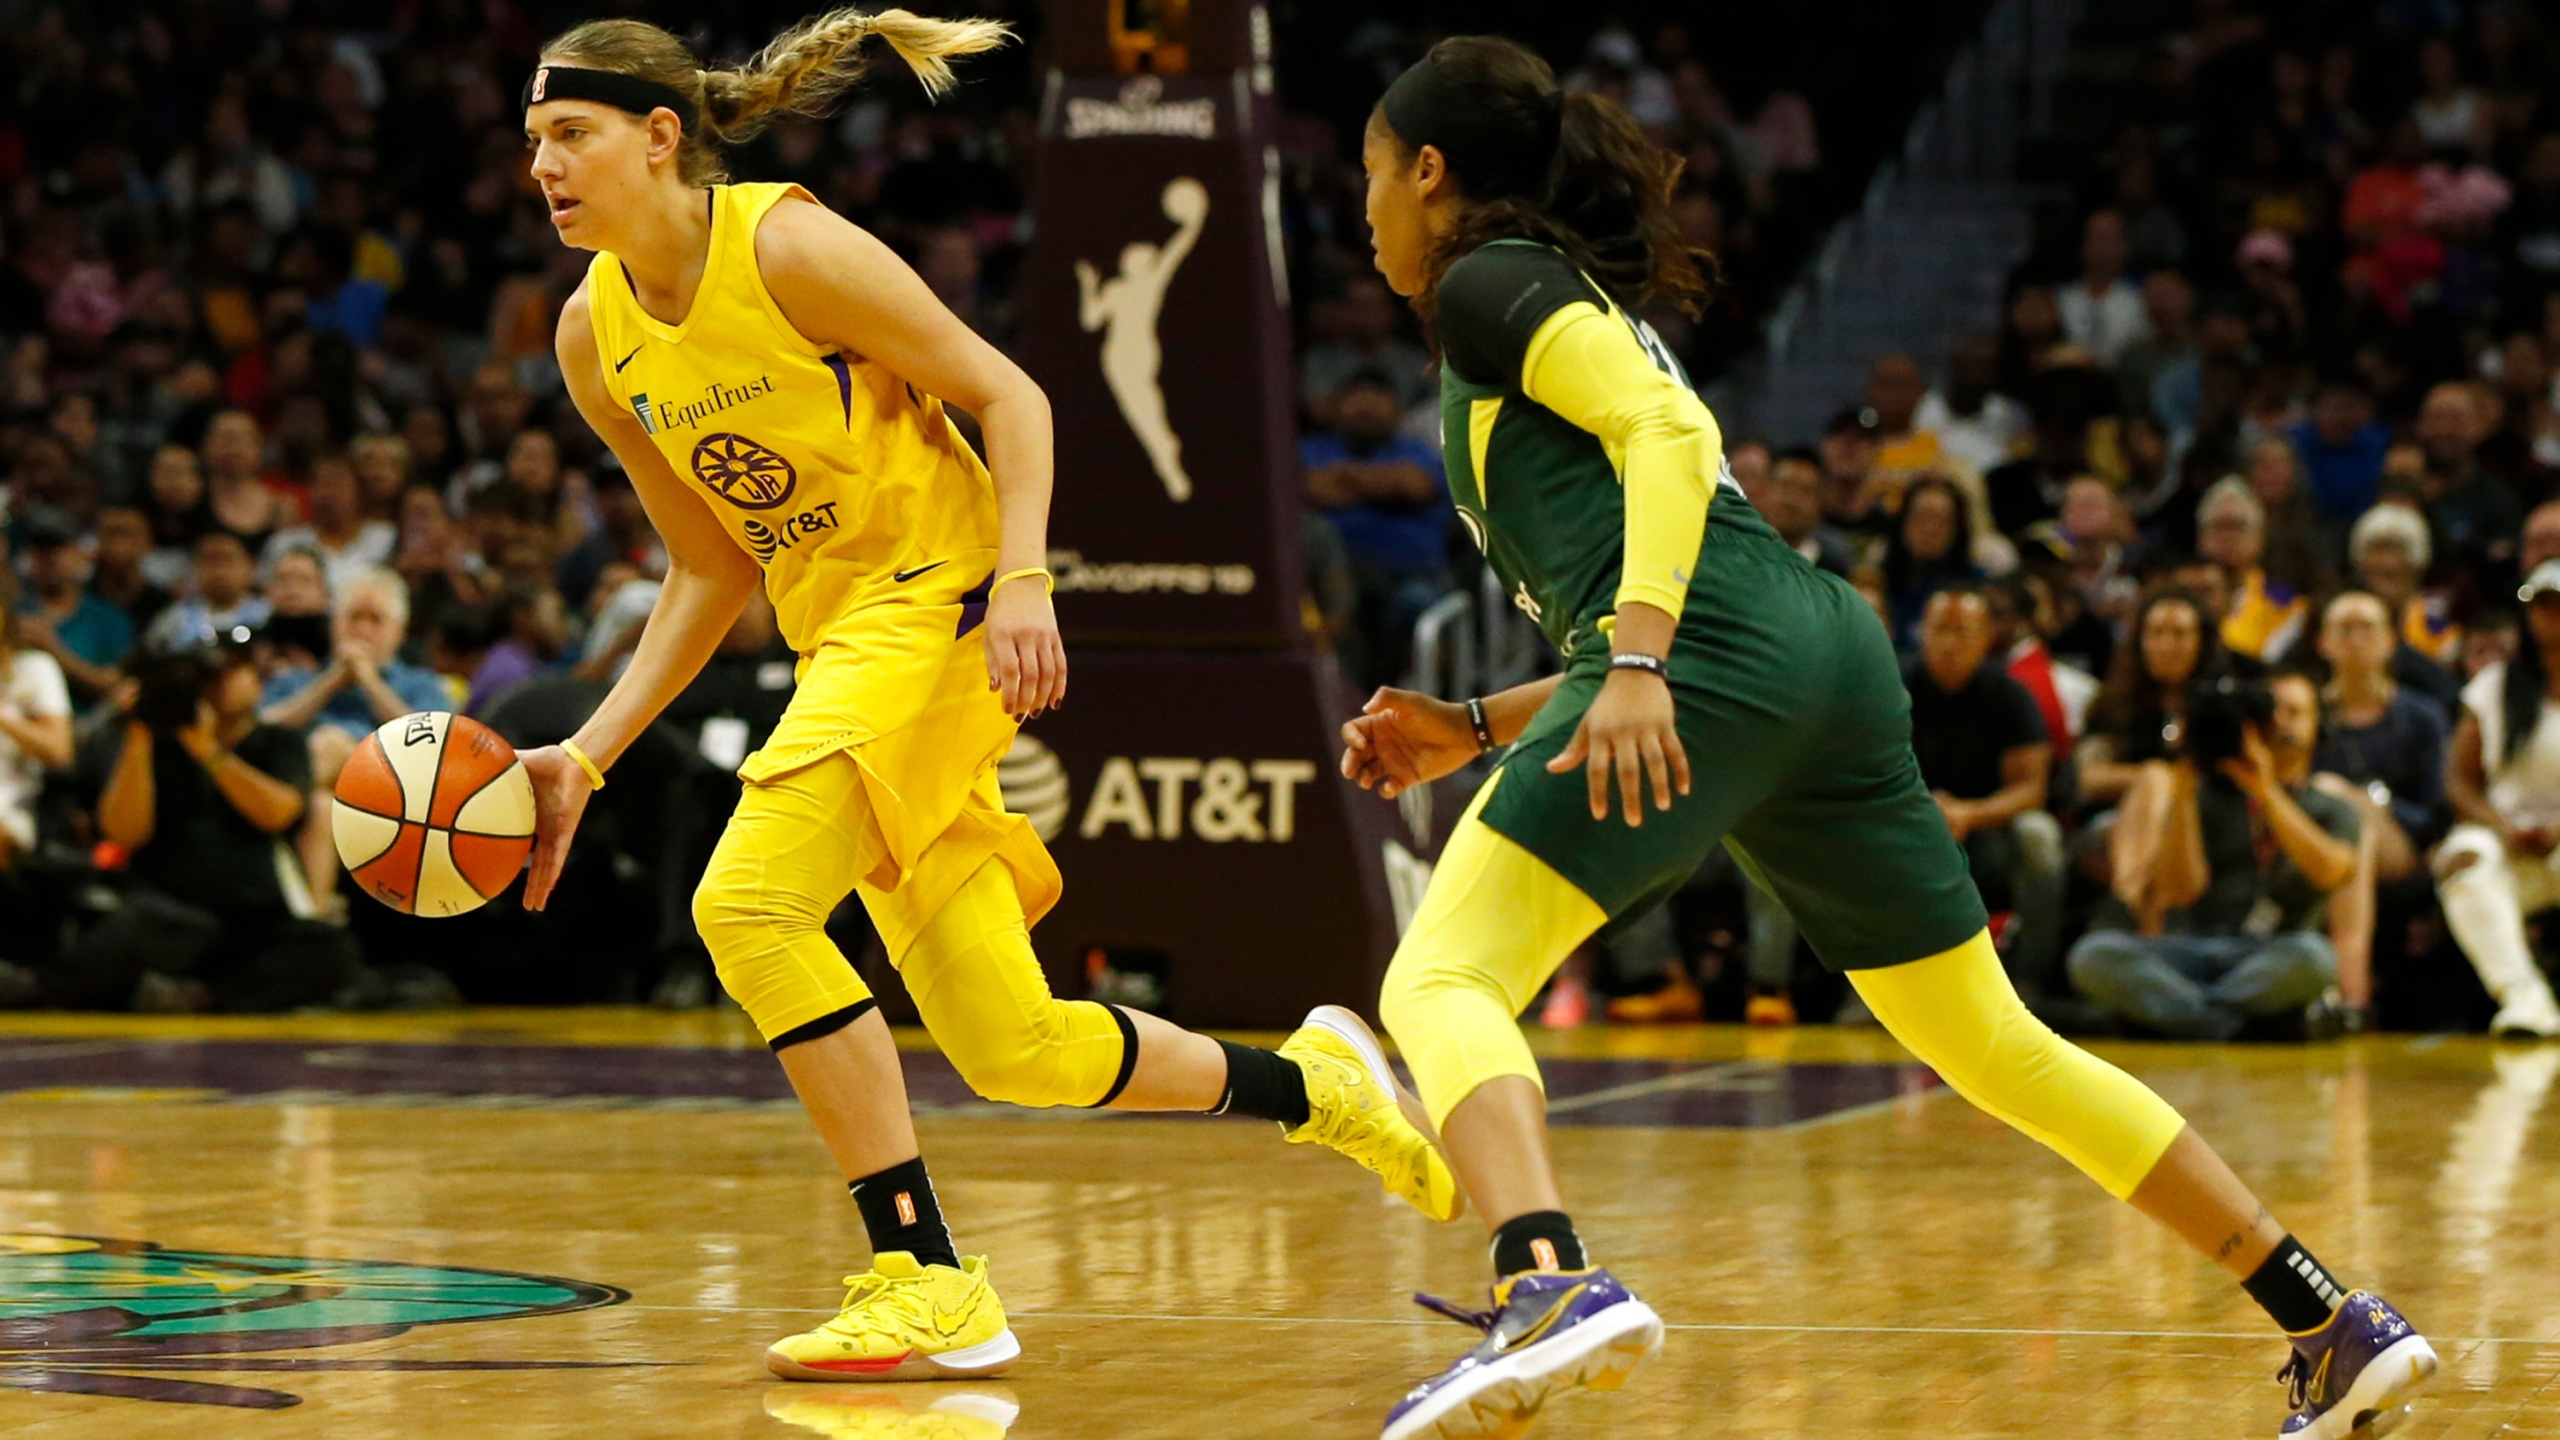 Guard Sydney Wiese #24 of the Los Angeles Sparks drives around guard Jordin Canada #21 of the Seattle Storm at Staples Center on Sept. 15, 2019. in Los Angeles. (Katharine Lotze/Getty Images)